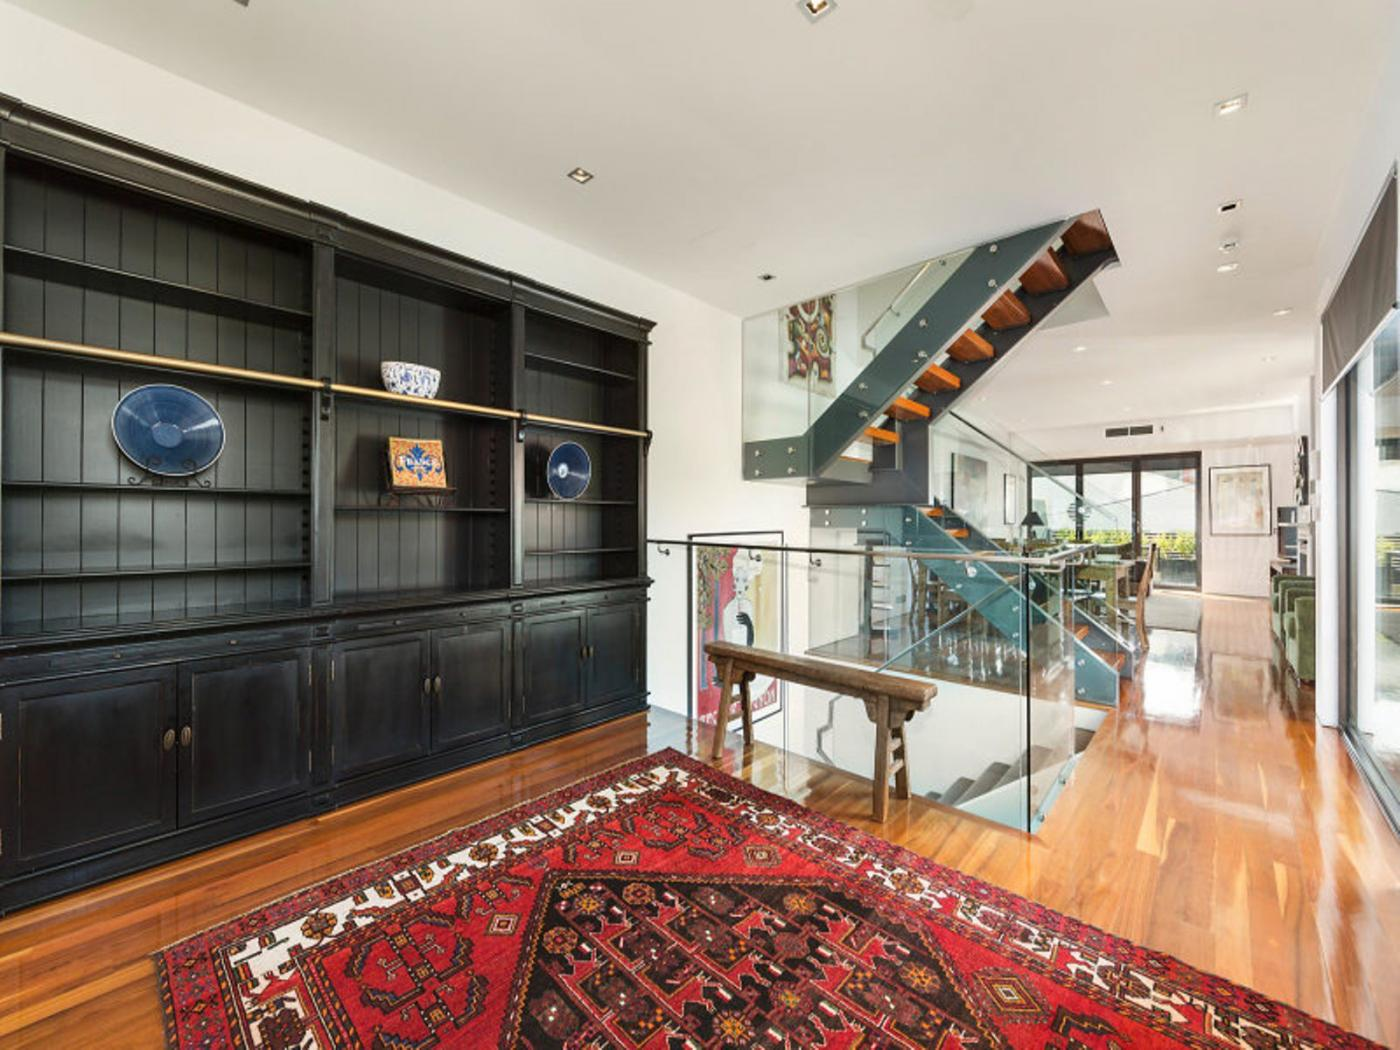 55-fitzgerald-street-south-yarra-vic-3141-real-estate-photo-3-xlarge-12718594